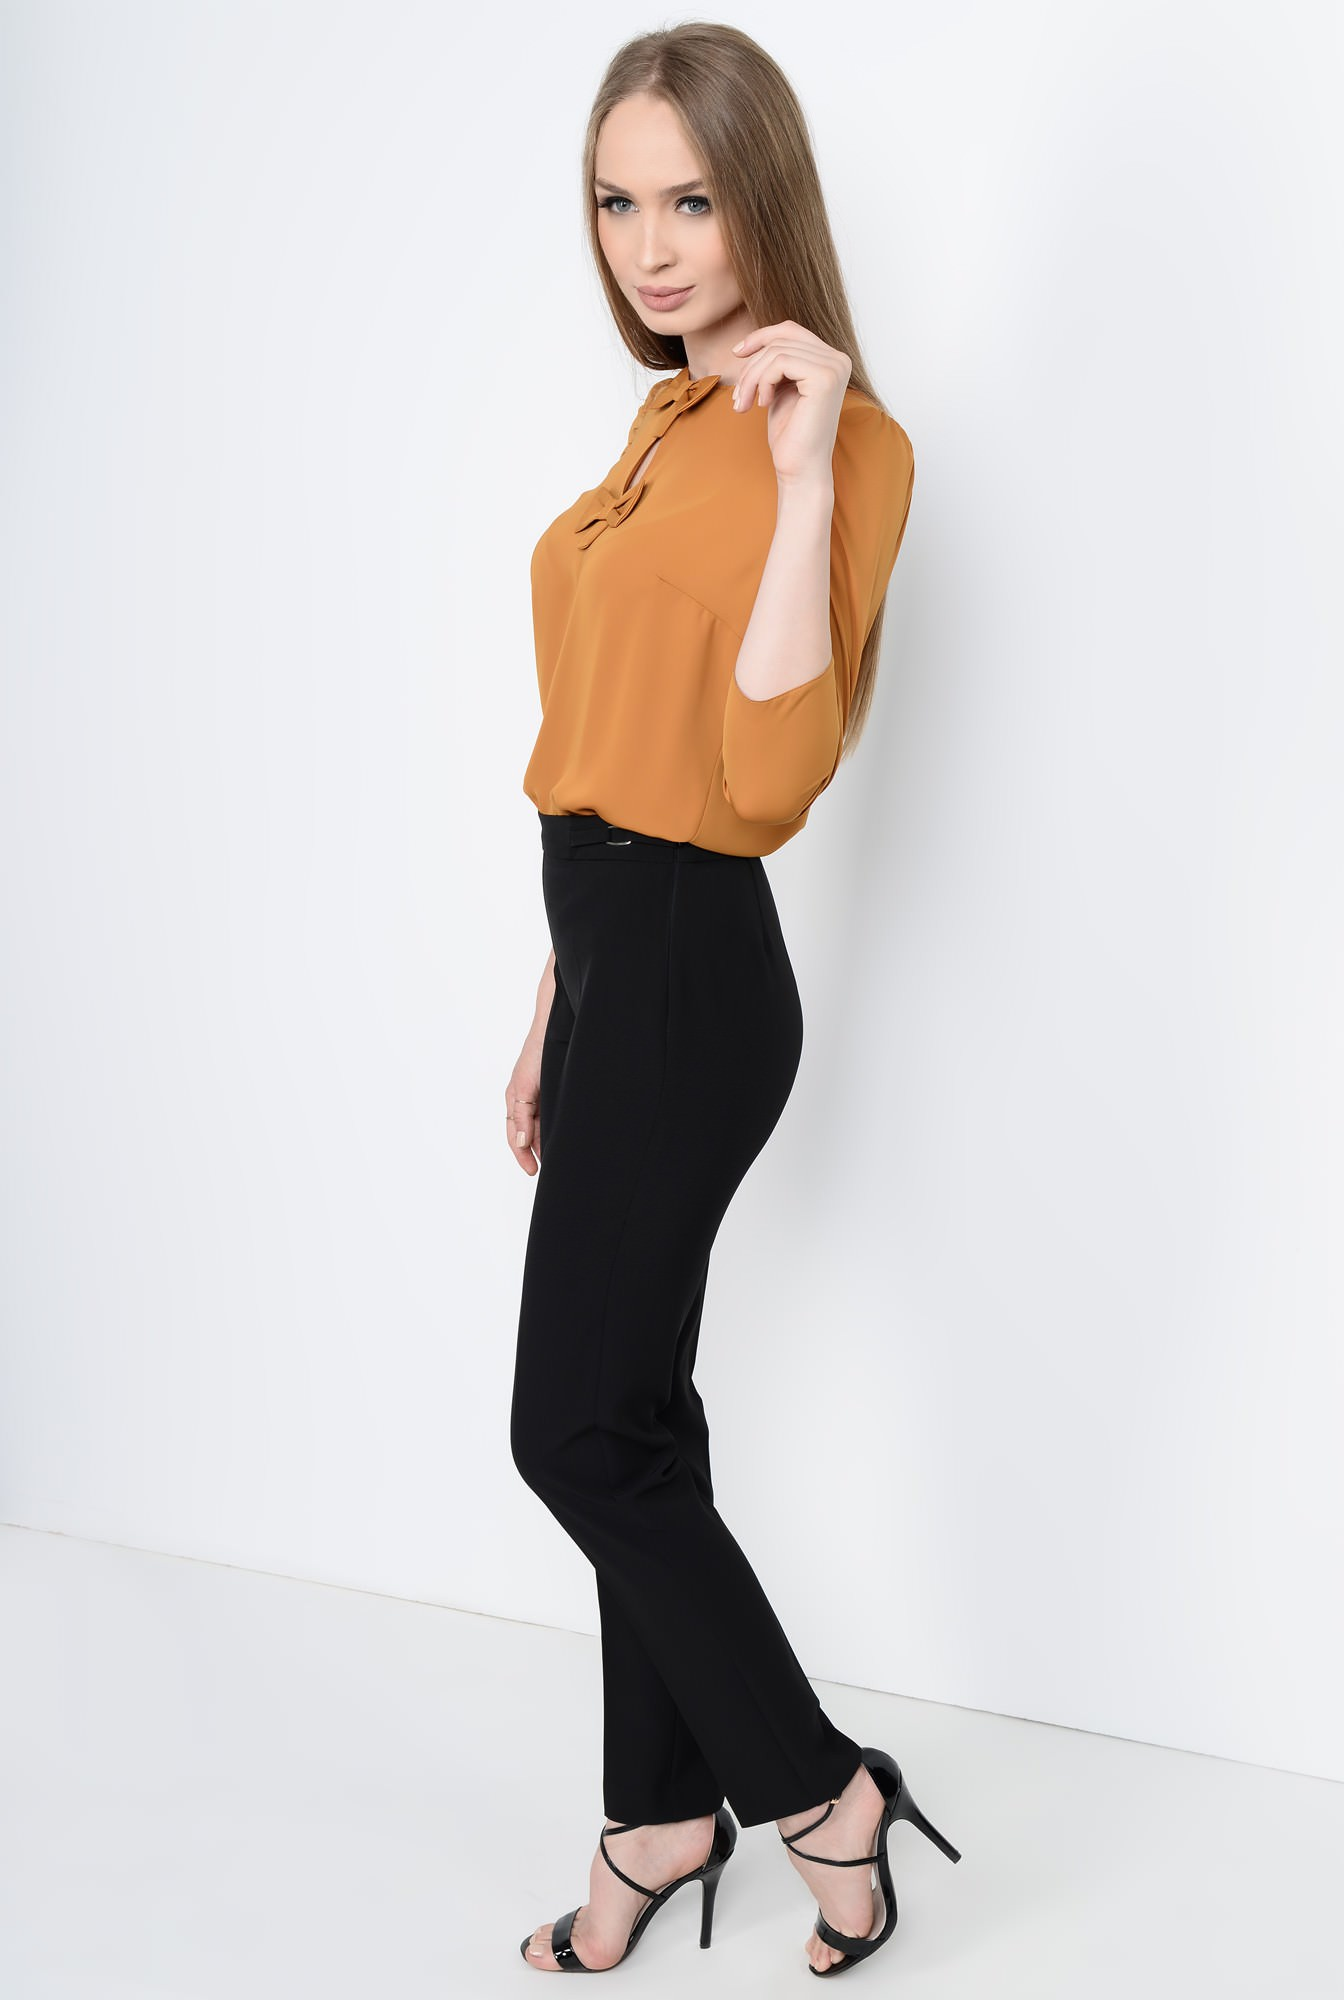 PANTALON OFFICE PT 103-NEGRU